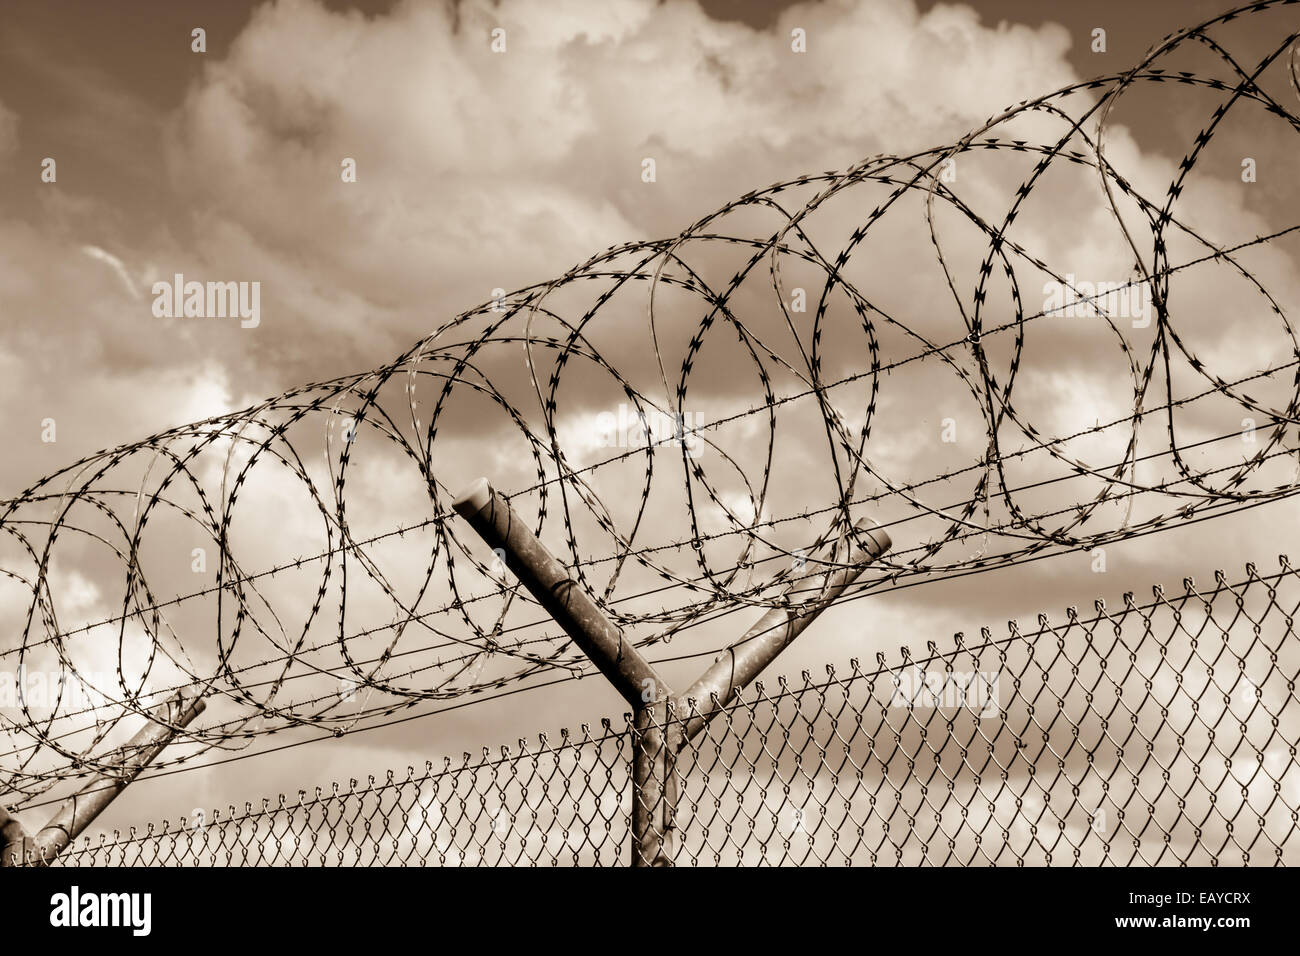 Security barrier with a barbed wire fence - Stock Image